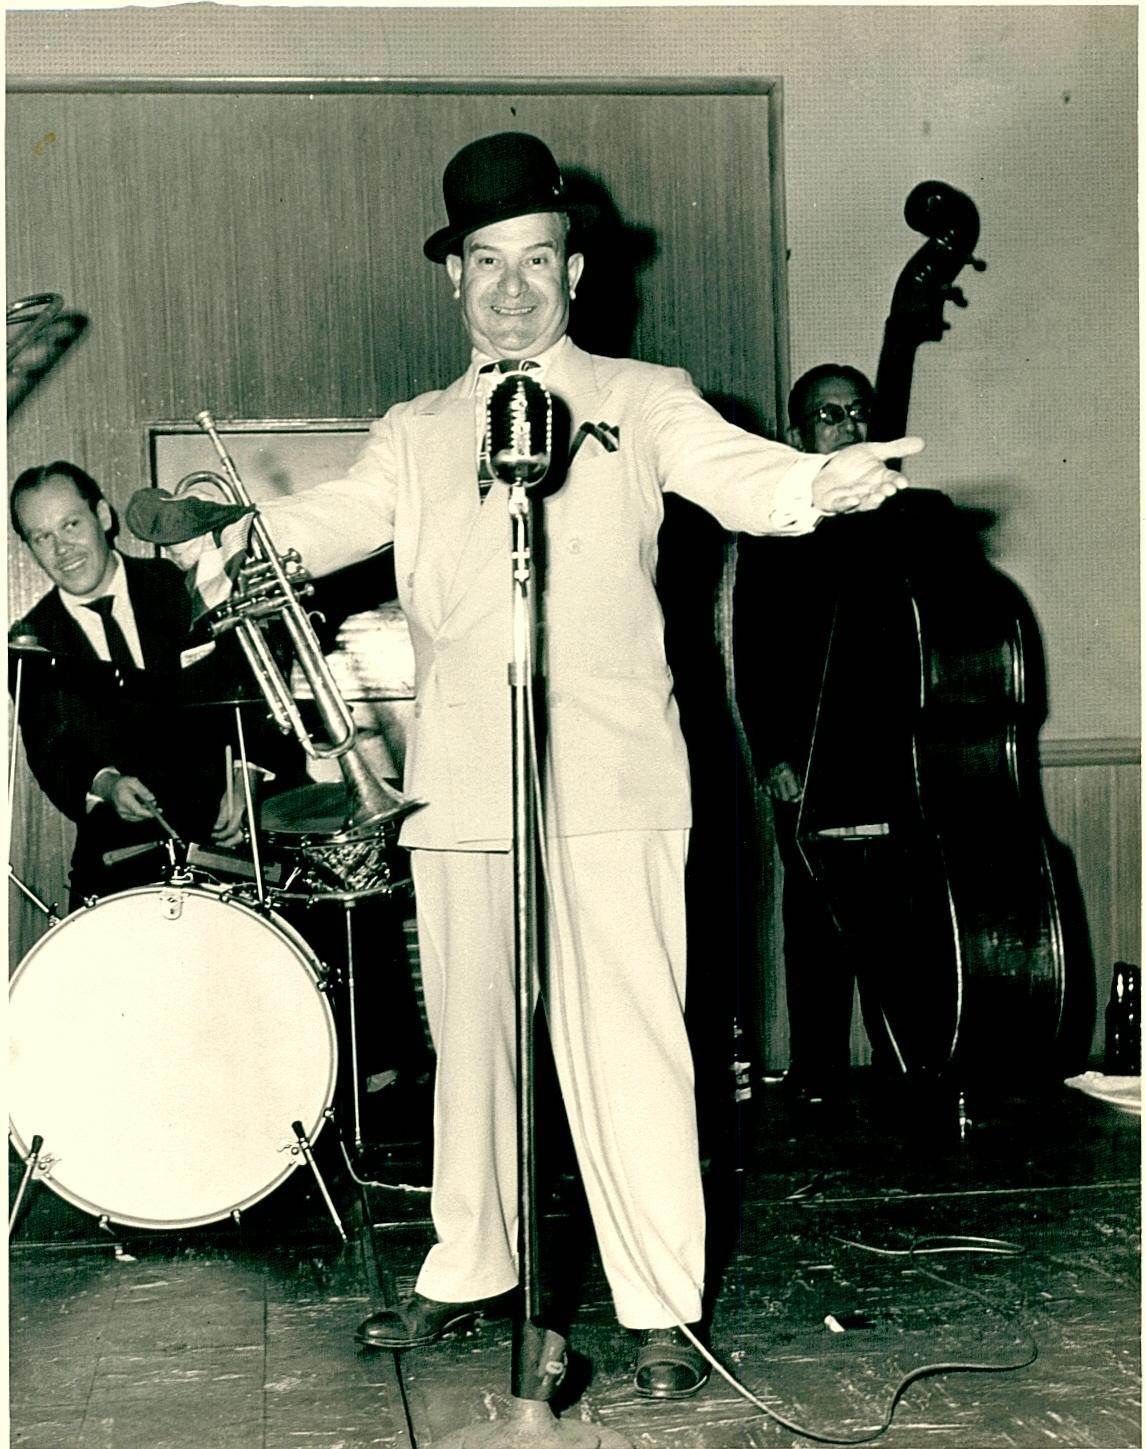 1954 Sharky Bonano (rare photo) at Lenfant's